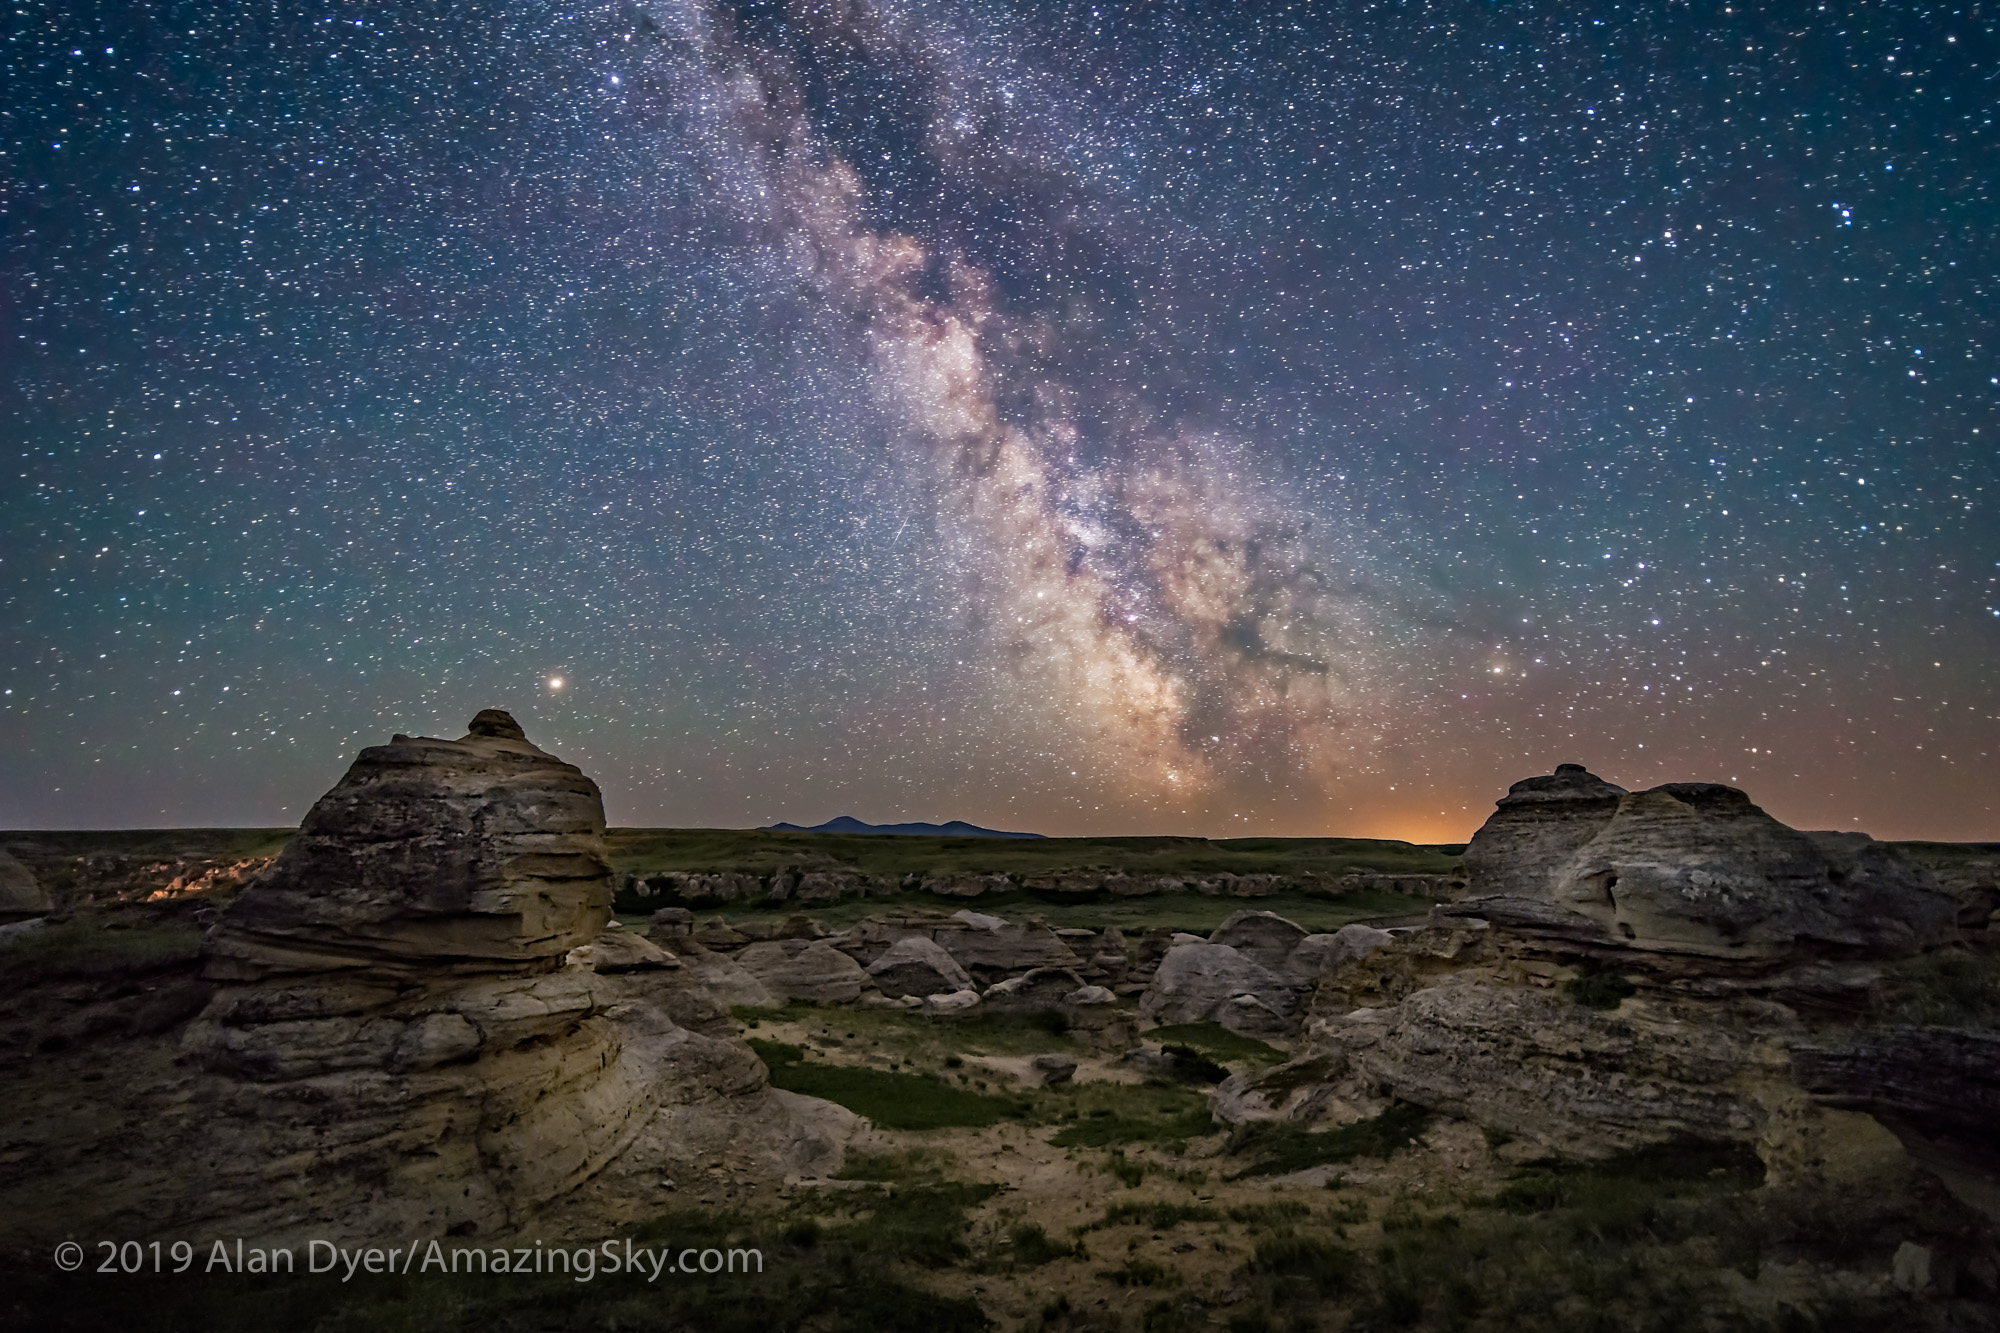 Mars and the Milky Way over Writing-on-Stone